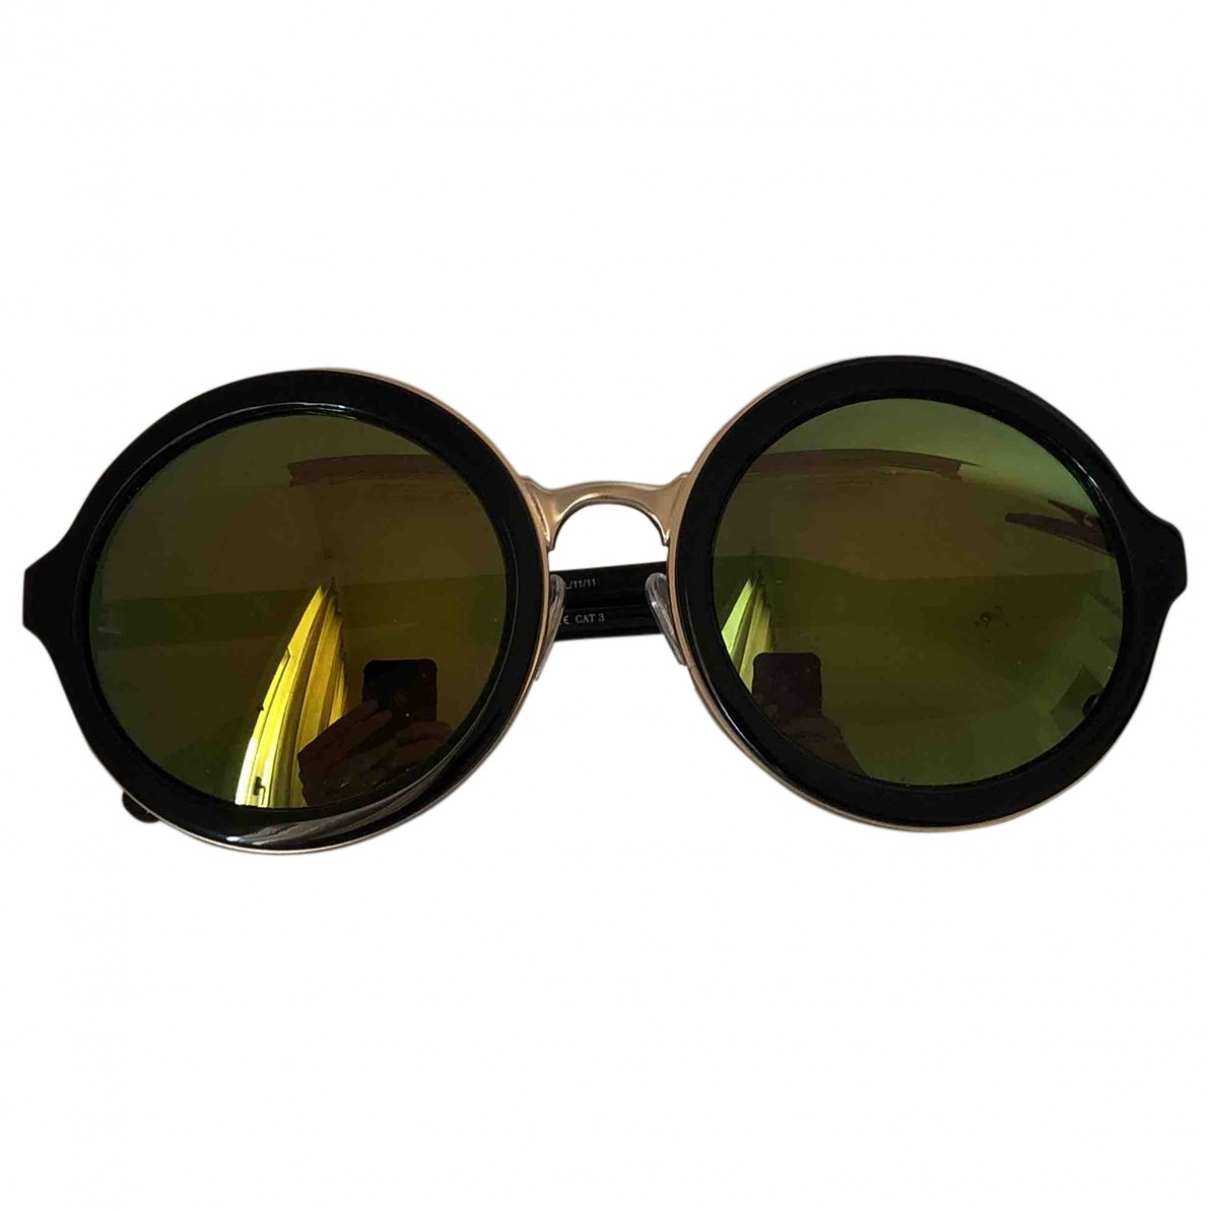 3.1 Phillip Lim \N Black Sunglasses for Women \N